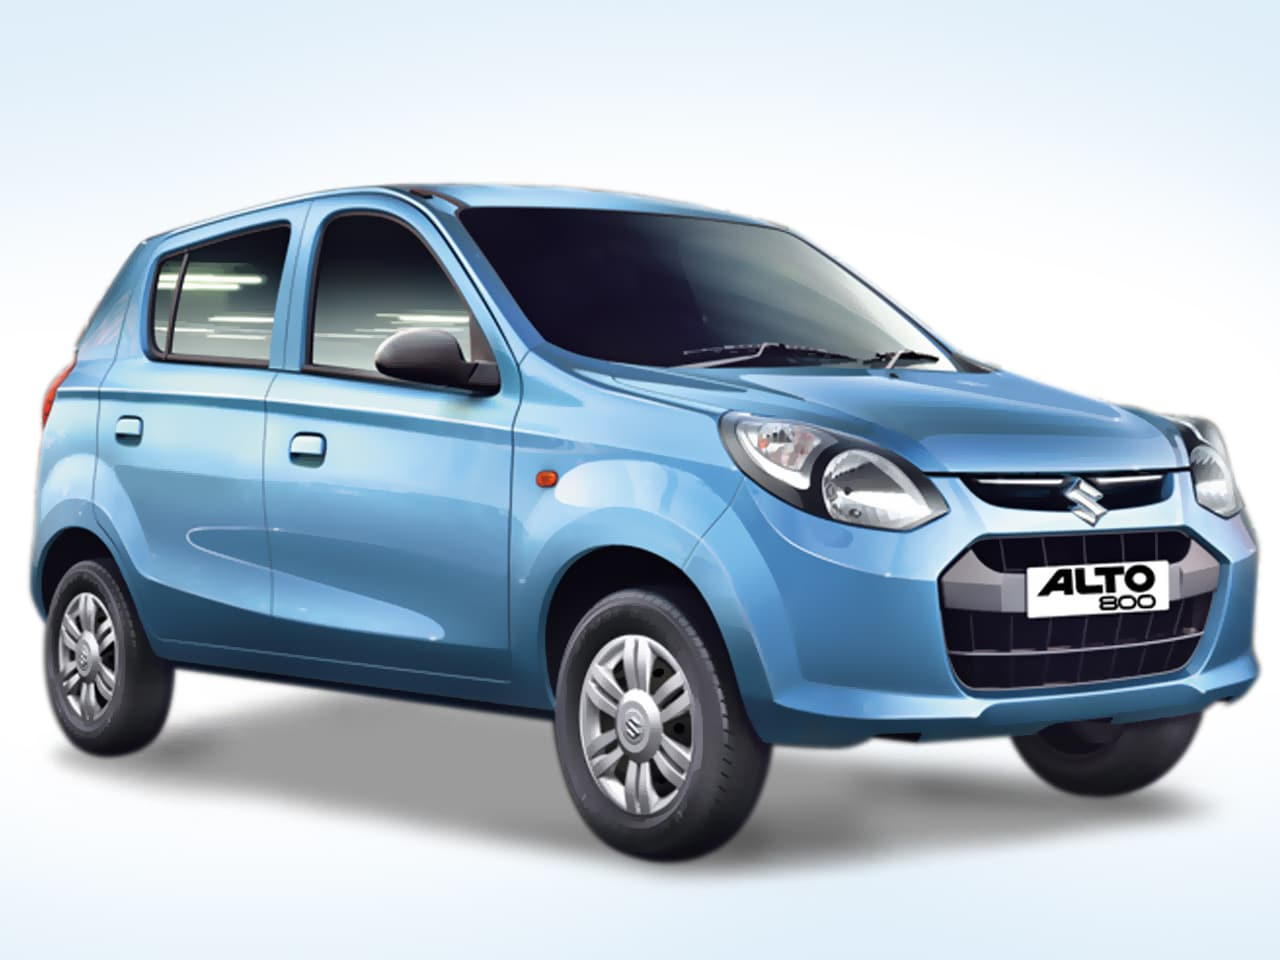 Maruti Suzuki Alto 800 India Price Review Images